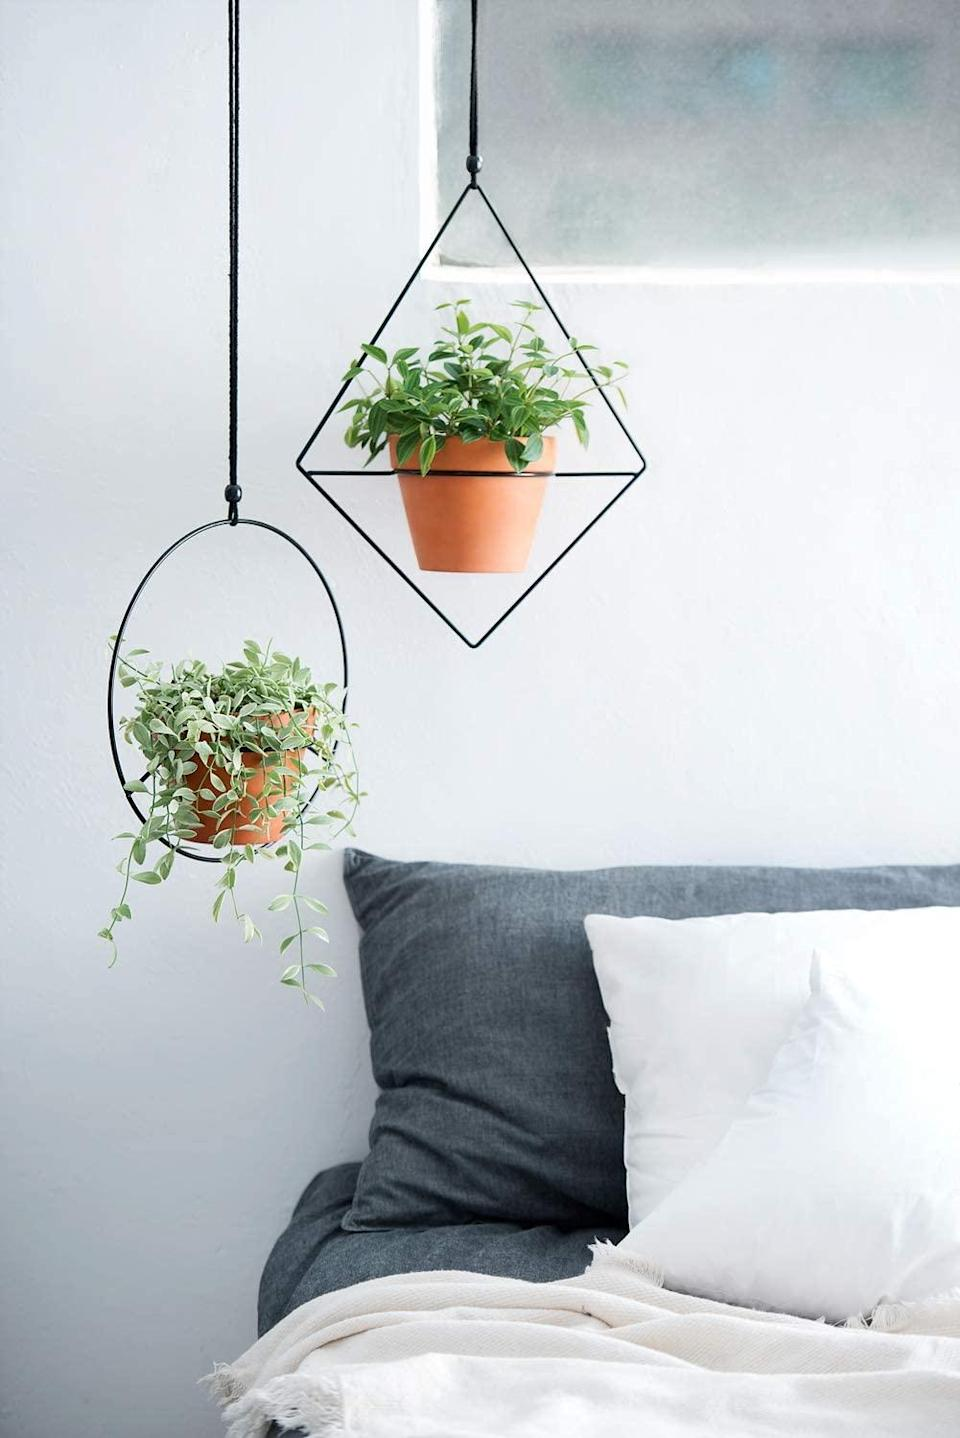 """<h2>Mkono Geometric Metal Plant Hanger Set</h2><br>If you've got a green thumb and a contemporary sense of style, this black planter duo is for you. Its modern geometric shape sets it apart from other hanging planters, while the metal material has an industrial appeal.<br><br><strong>Mkono</strong> Geometric Metal Plant Hanger Set, $, available at <a href=""""https://amzn.to/39g1uO7"""" rel=""""nofollow noopener"""" target=""""_blank"""" data-ylk=""""slk:Amazon"""" class=""""link rapid-noclick-resp"""">Amazon</a>"""